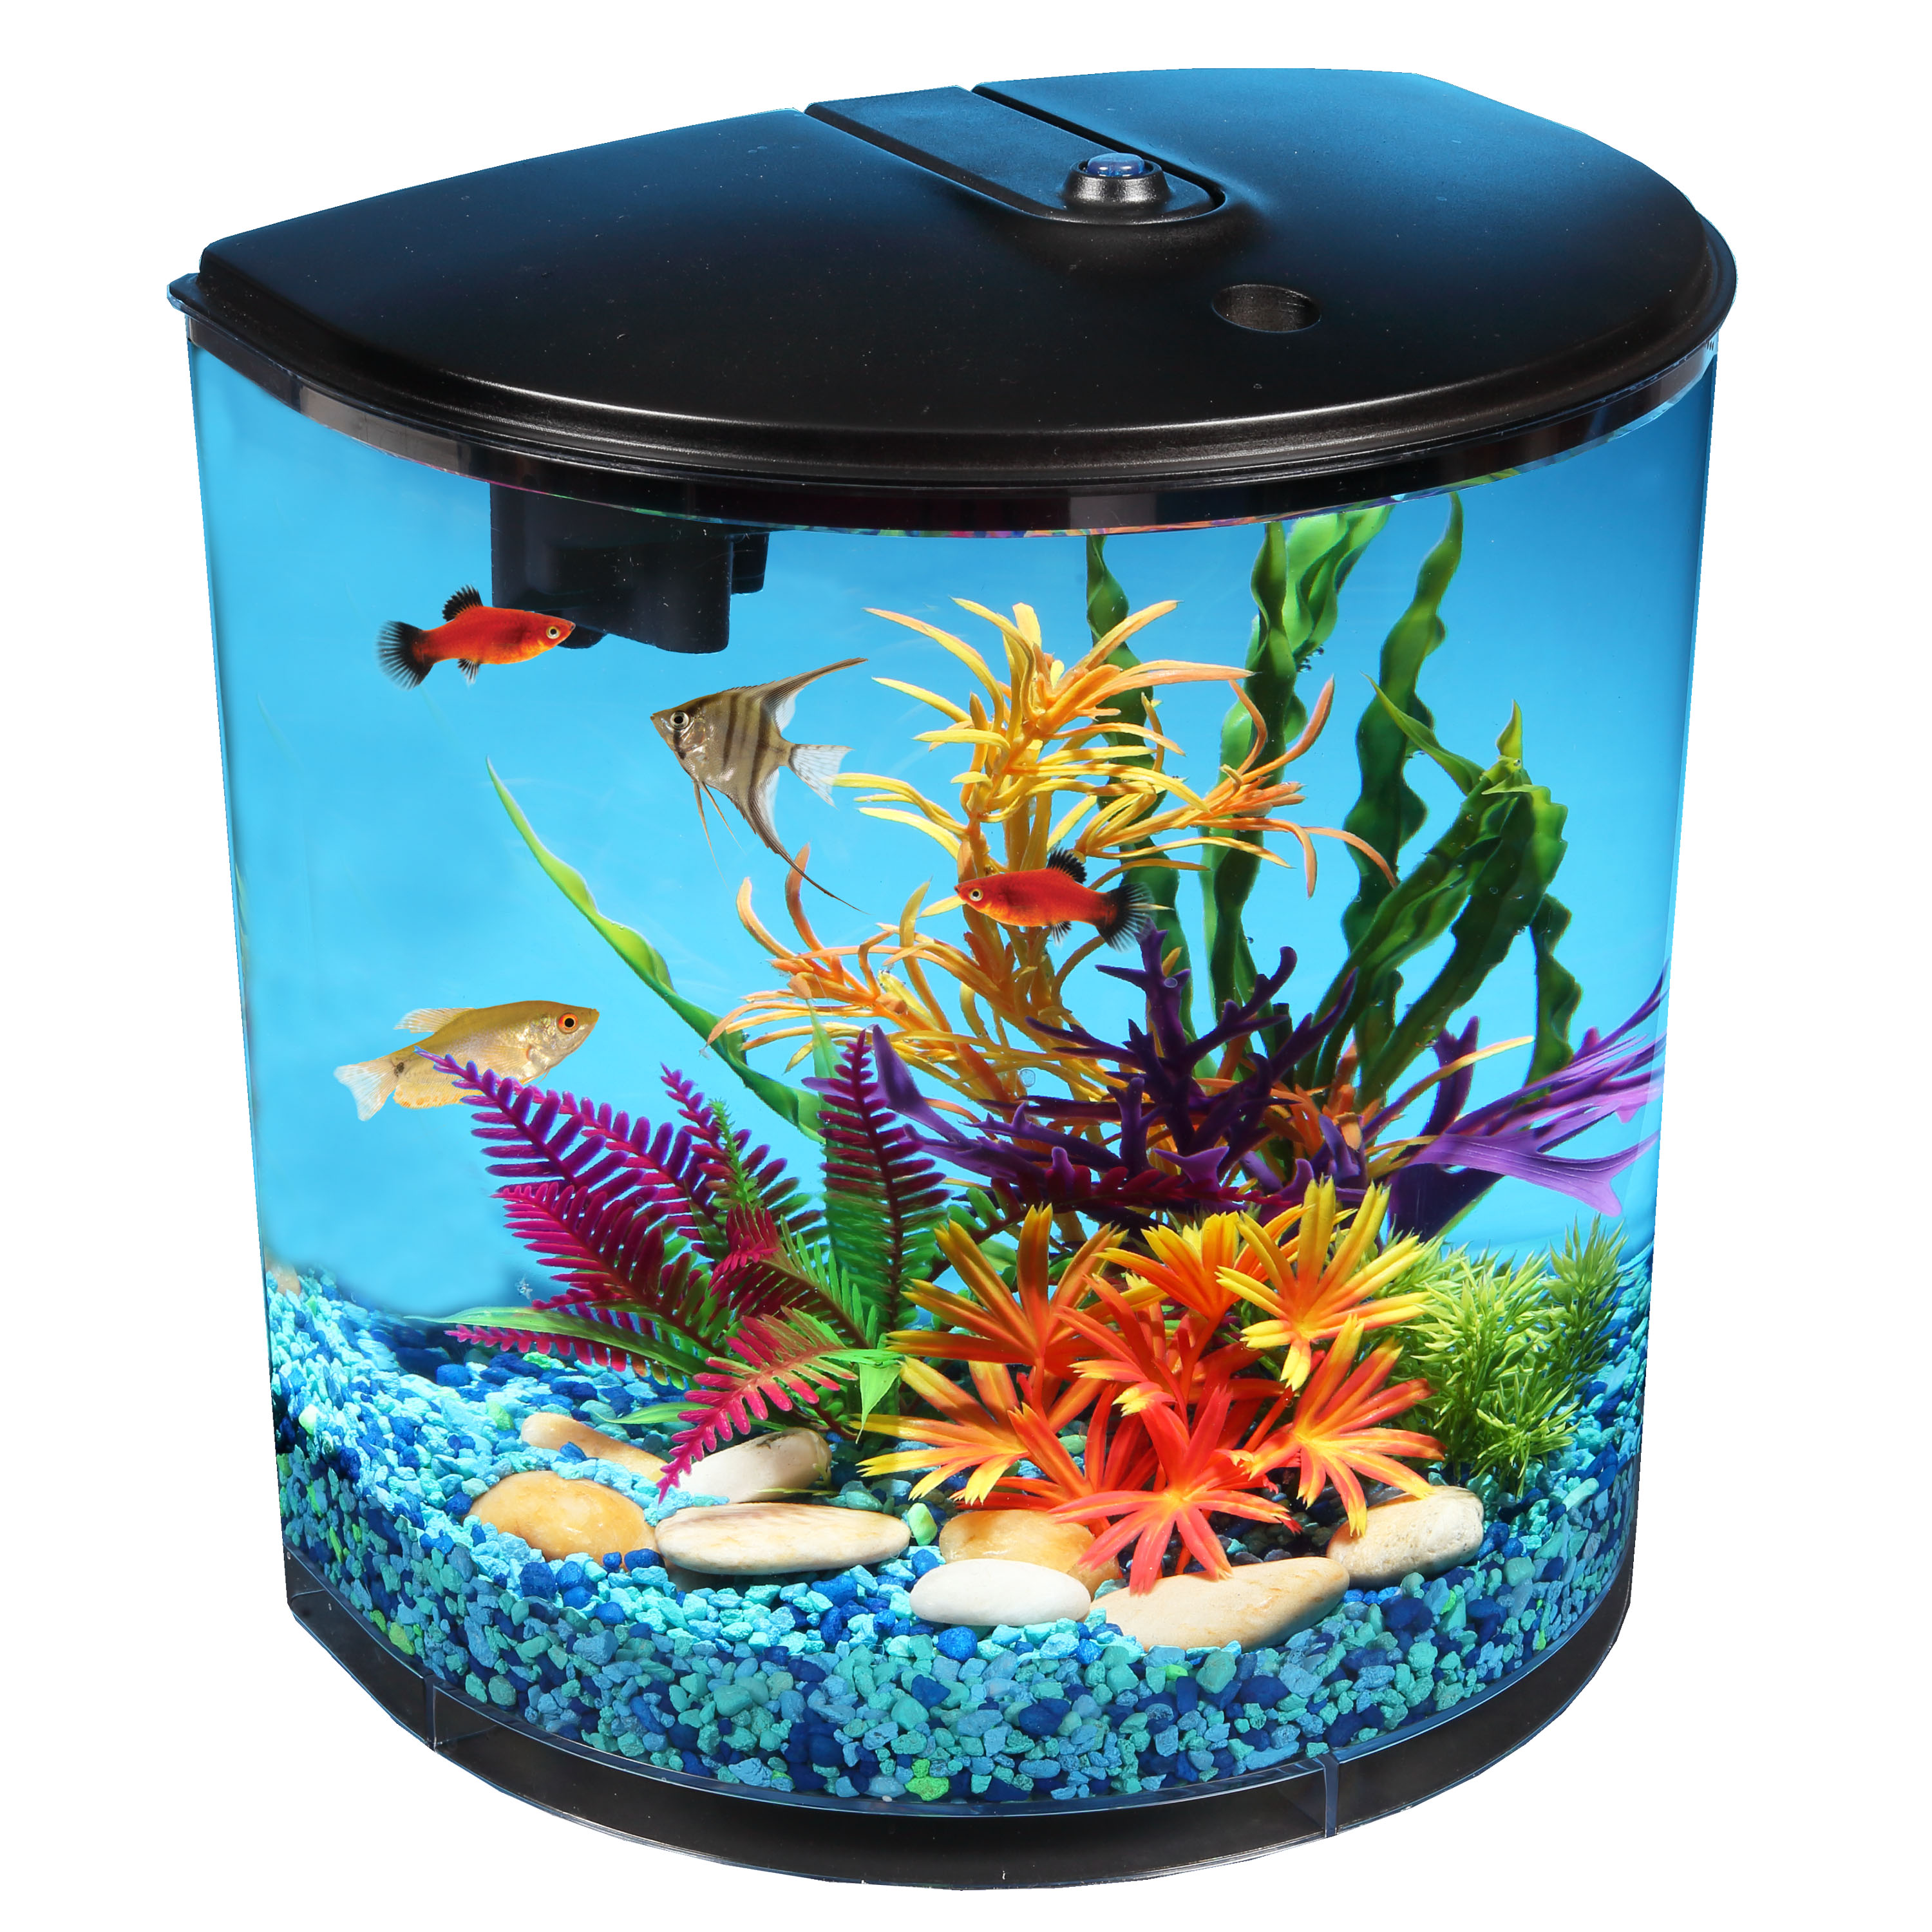 Hawkeye 180 View Fish Tank LED Lighting and Filter 3 5 Gallon